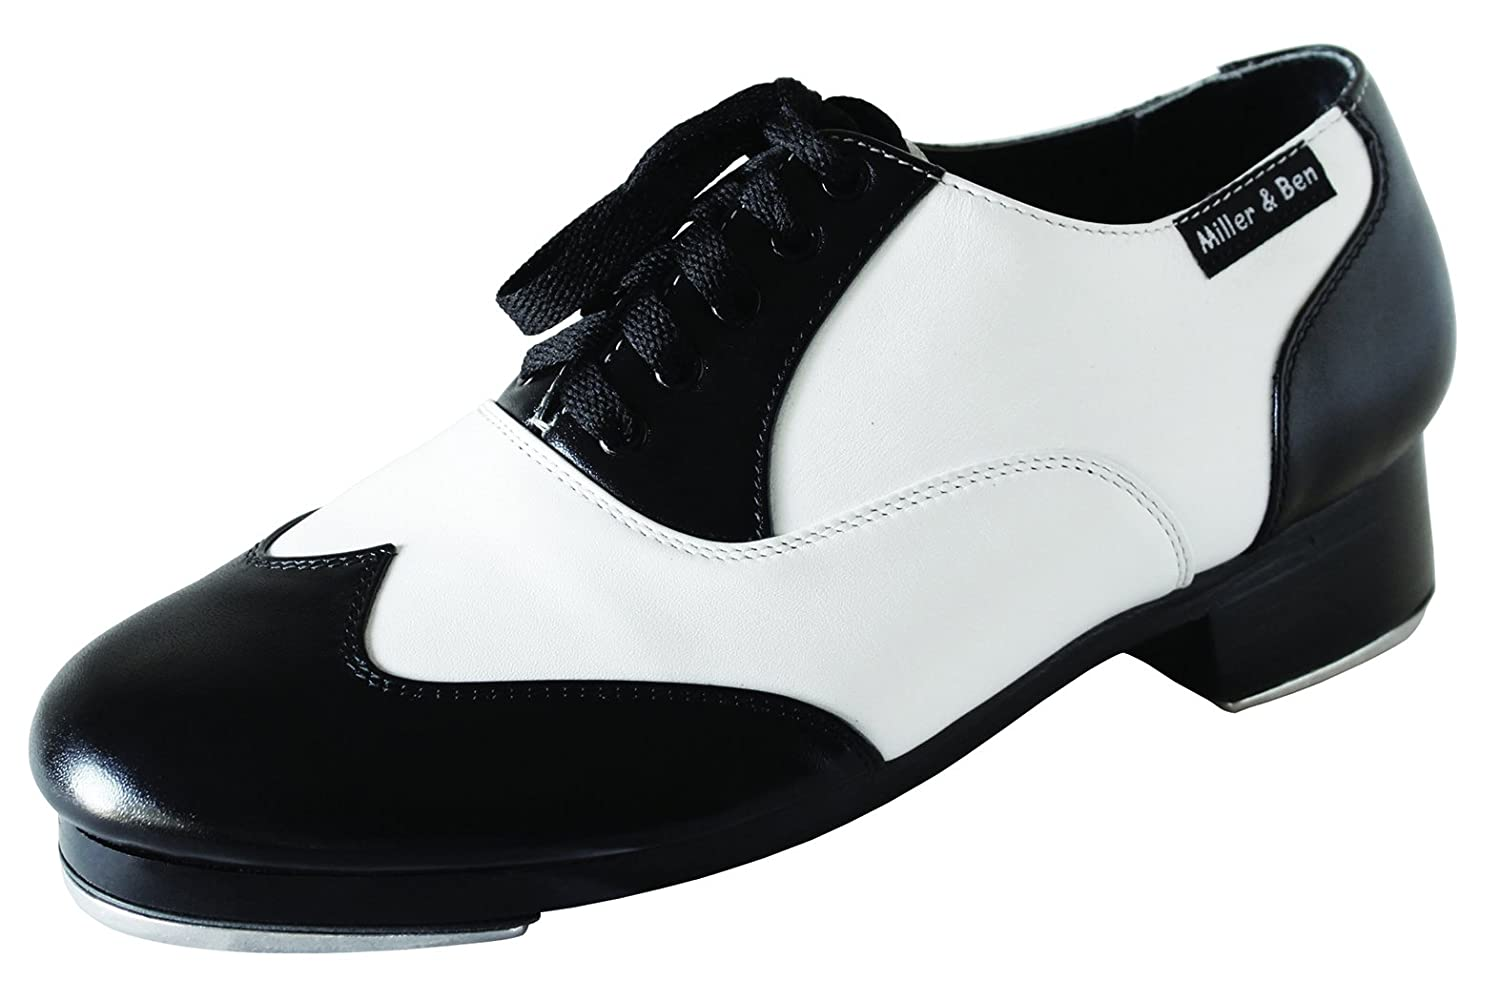 Swing Dance Shoes- Vintage, Lindy Hop, Tap, Ballroom Miller & Ben Tap Shoes Jazz-Tap Master Black & White - STANDARD SIZES $285.00 AT vintagedancer.com